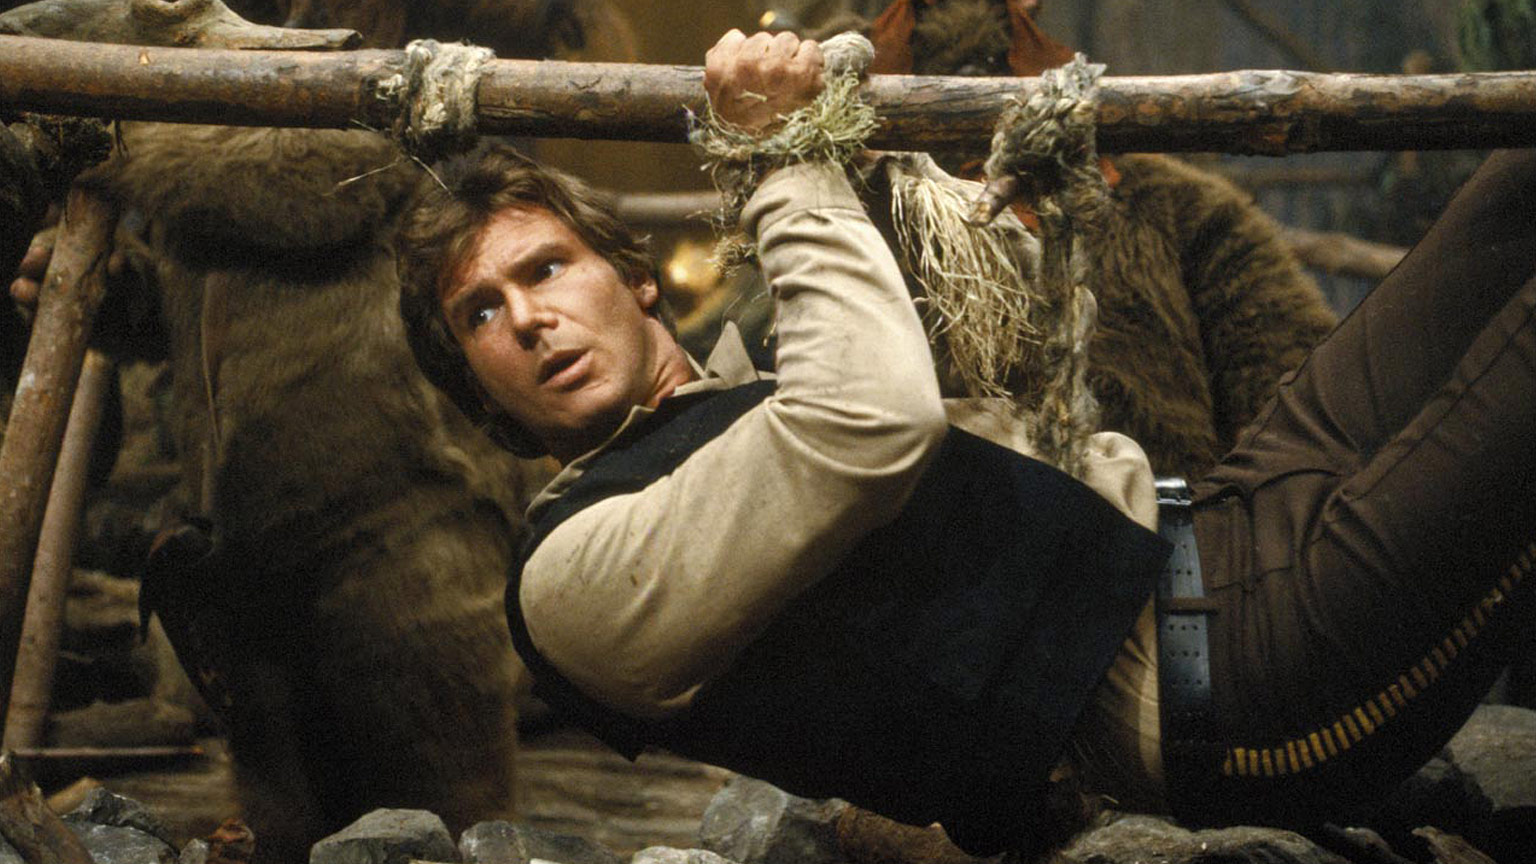 Han solo quotes 10 iconic lines from the star wars saga - Vaisseau star wars han solo ...